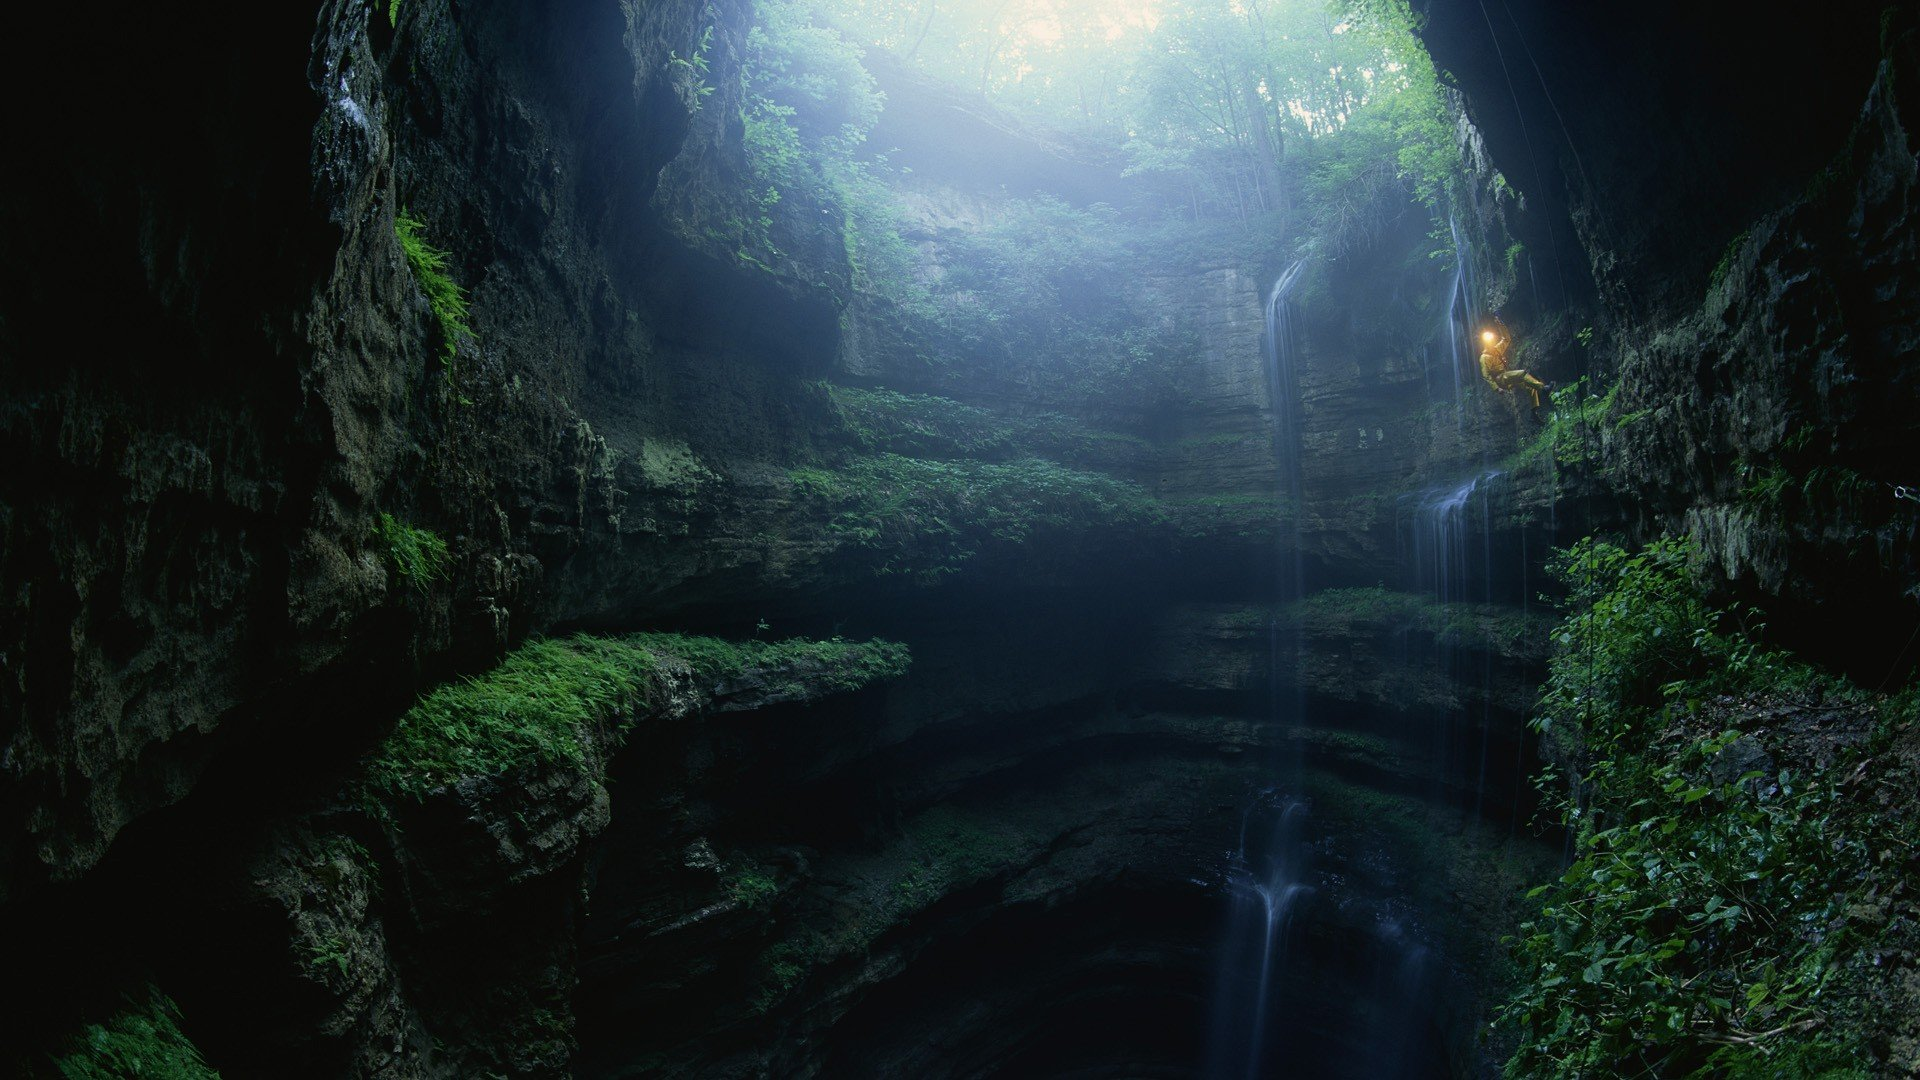 Wallpaper Abyss Nature